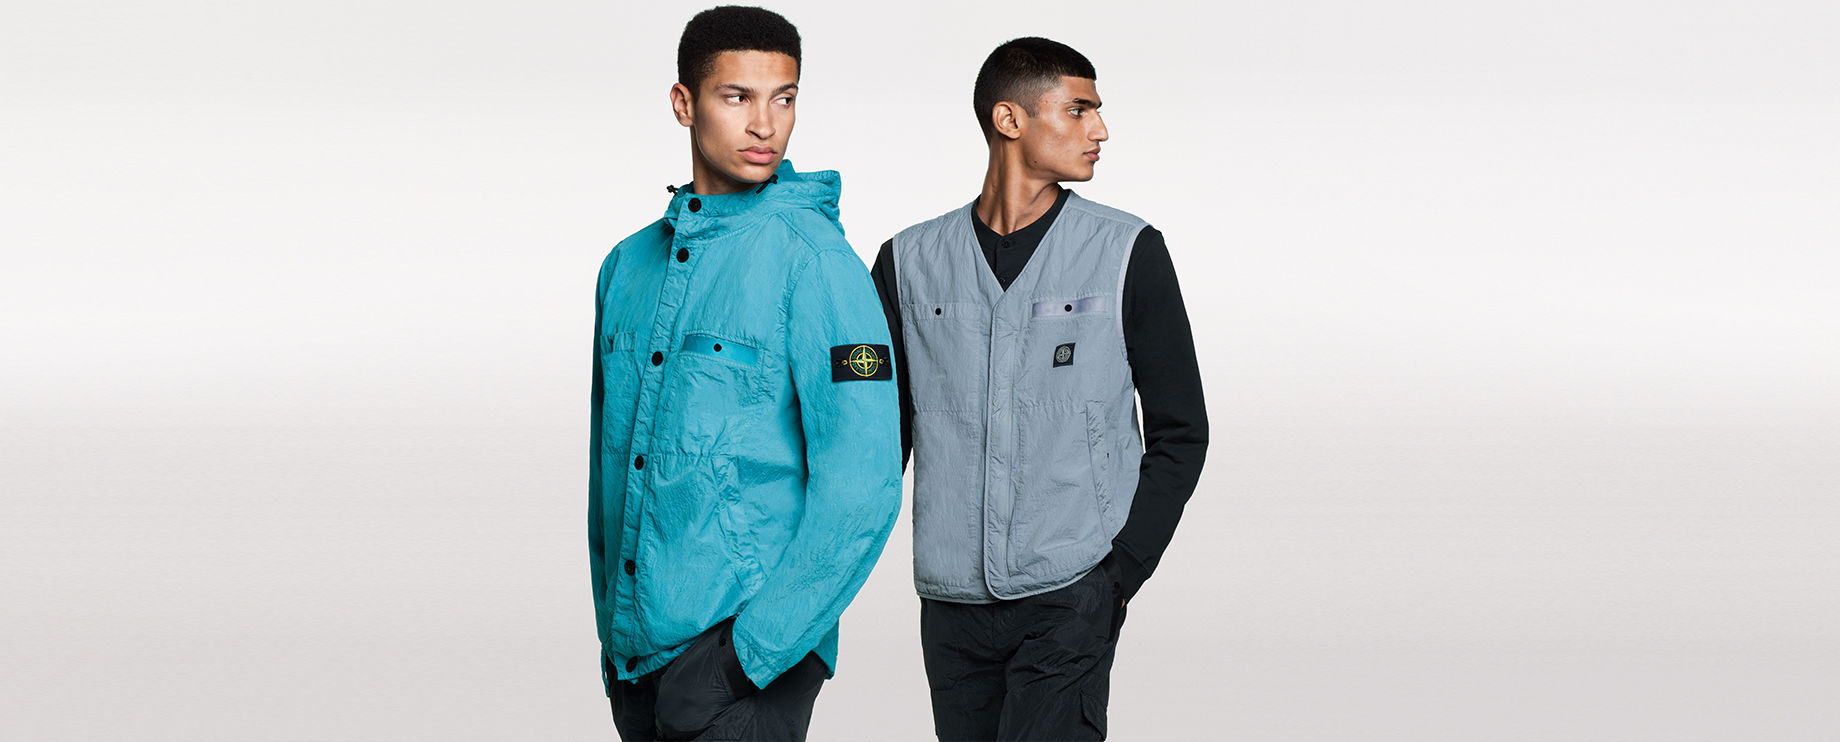 Two models, one wearing black pants and a bright blue hooded jacket with button closure, two patch pockets and two side pockets, the other one wearing black pants, a black shirt and a gray V neck vest with two patch pockets and two side pockets.